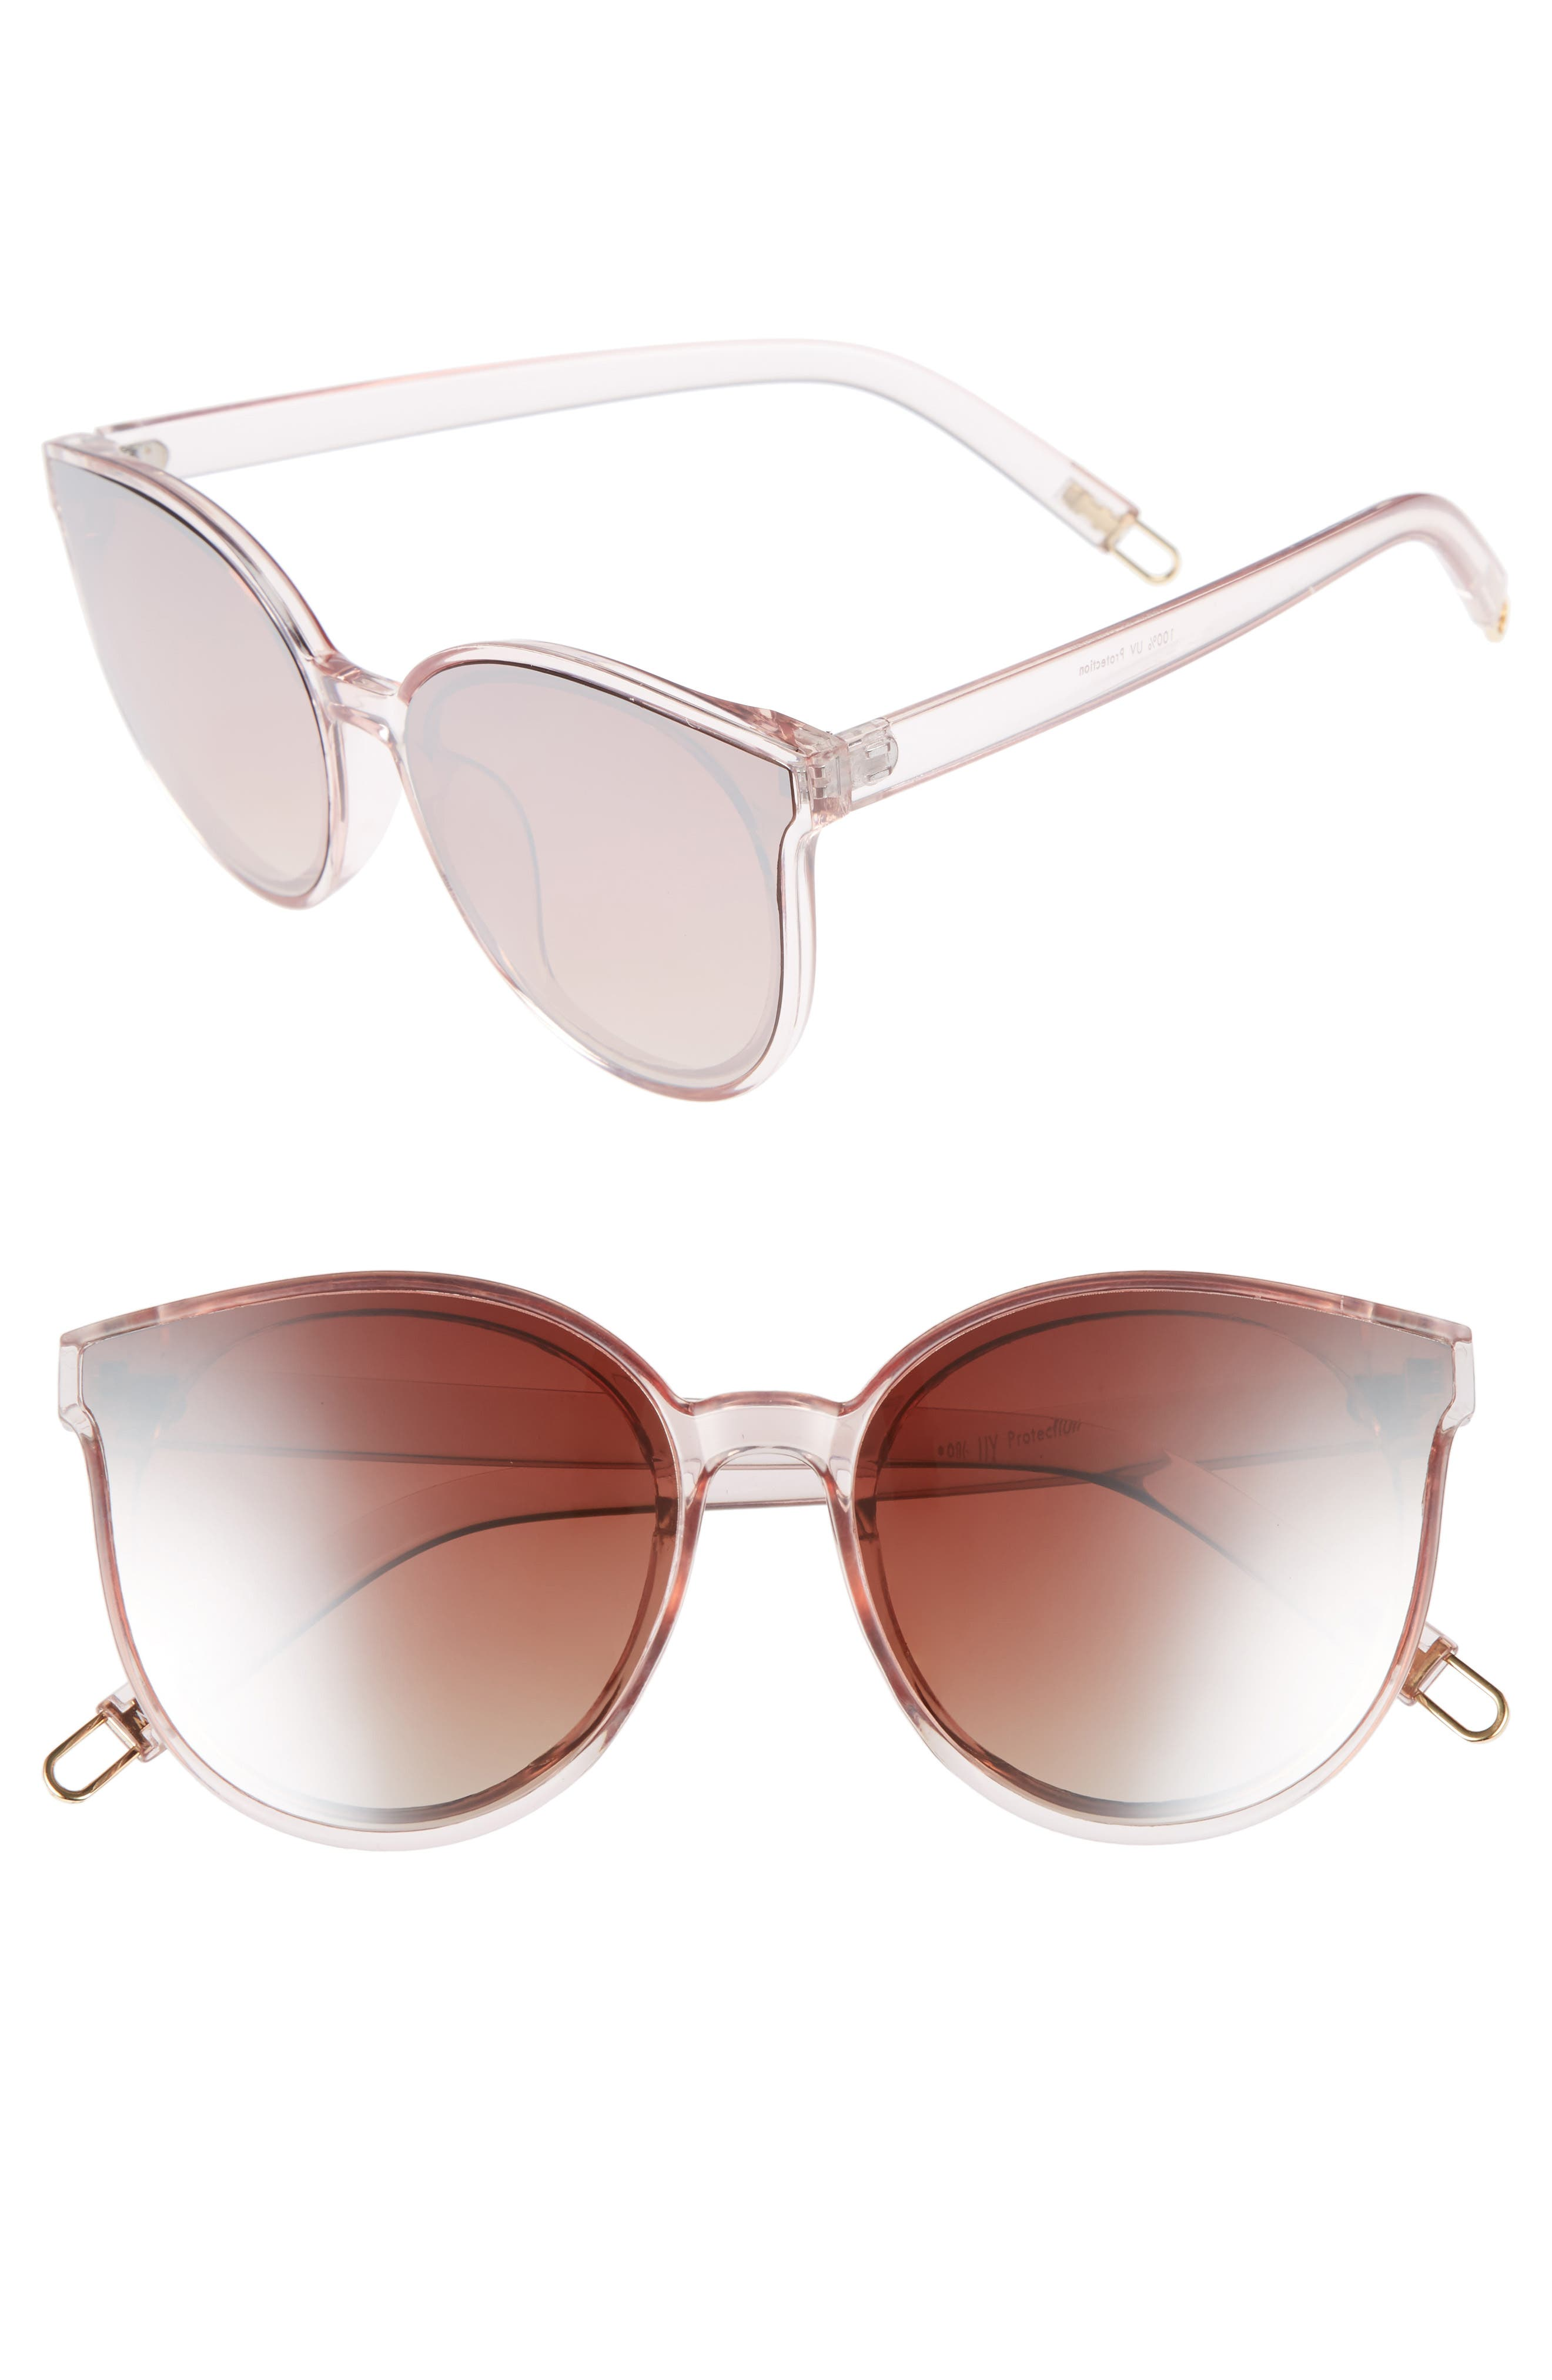 59mm Metal Tip Round Sunglasses,                         Main,                         color, Clear/ Pink